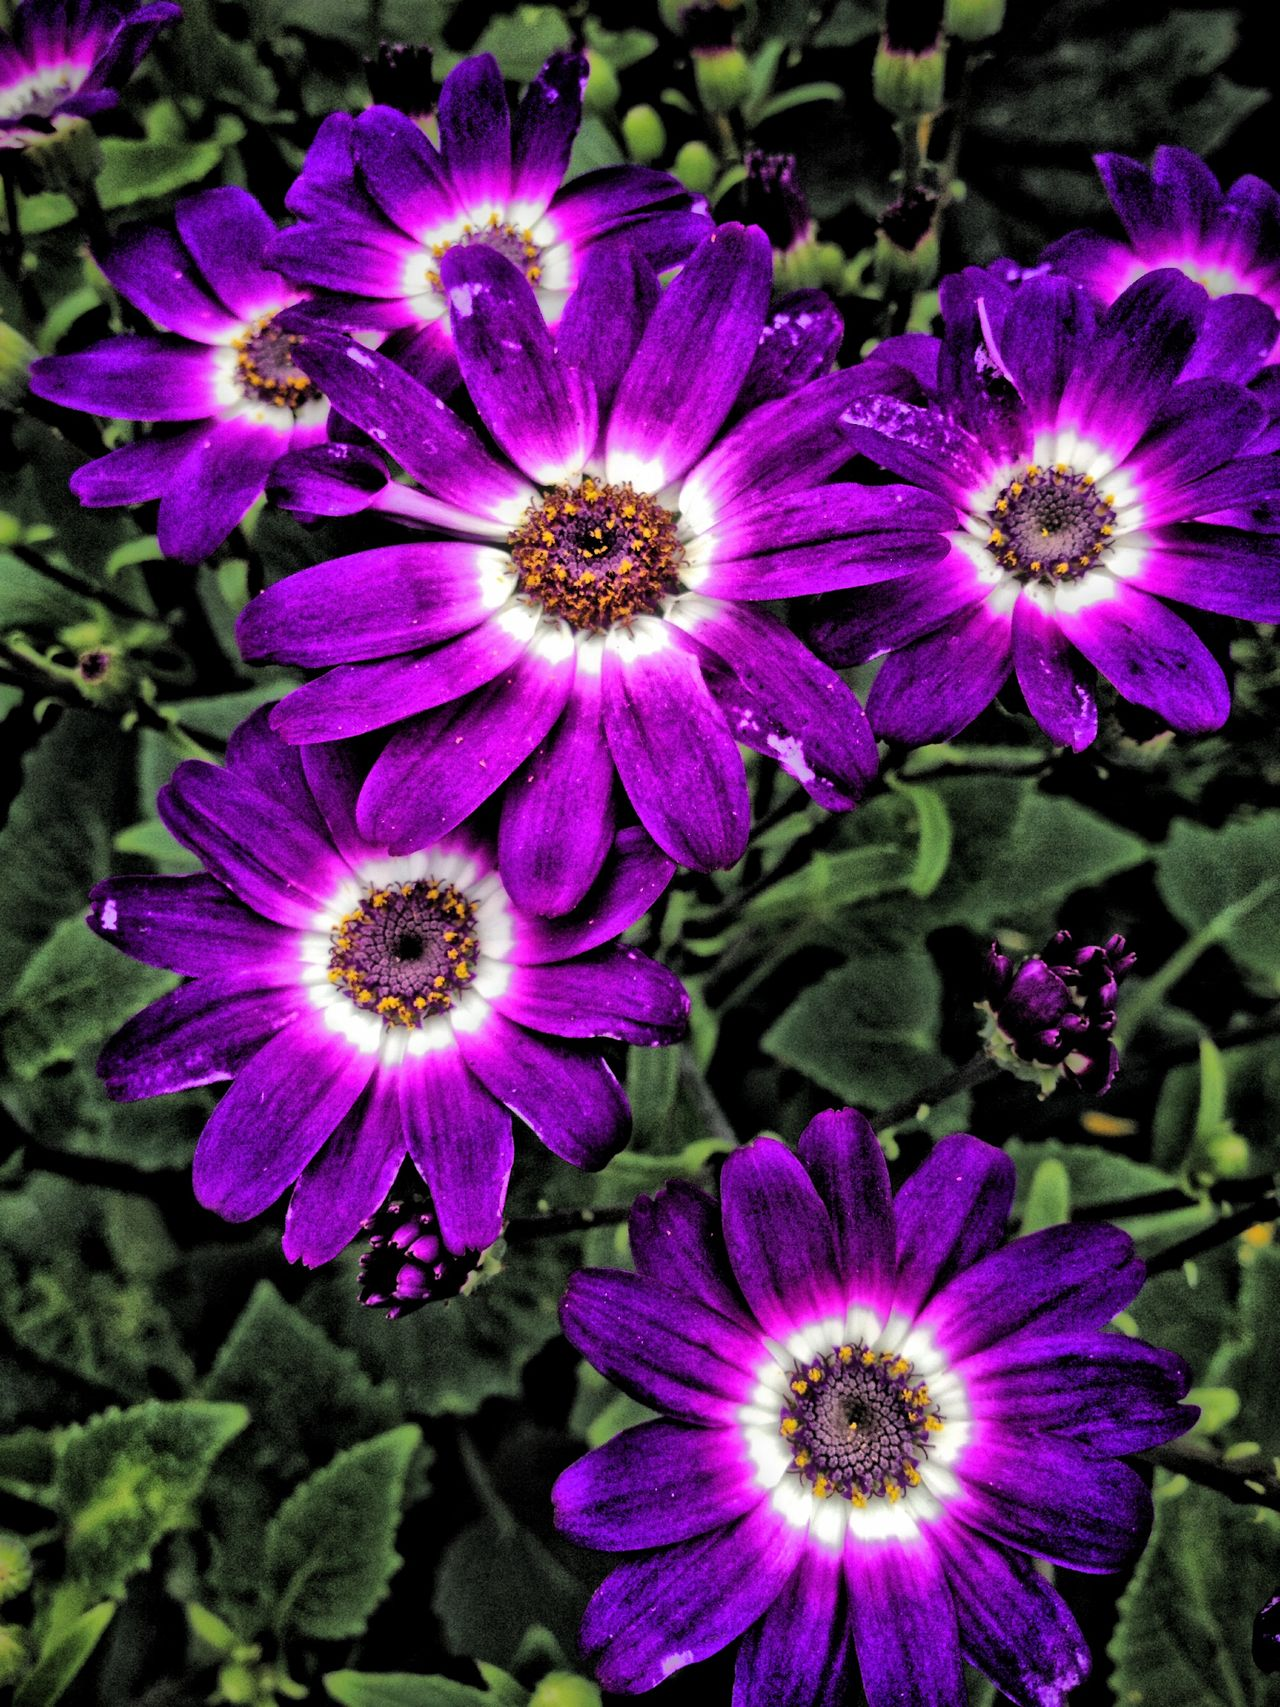 Cineraria flowers Beauty In Nature Blooming Botany Cineraria Close-up Flower Flower Head Flowers Freshness Growth In Bloom Nature Outdoors Petal Plant Purple